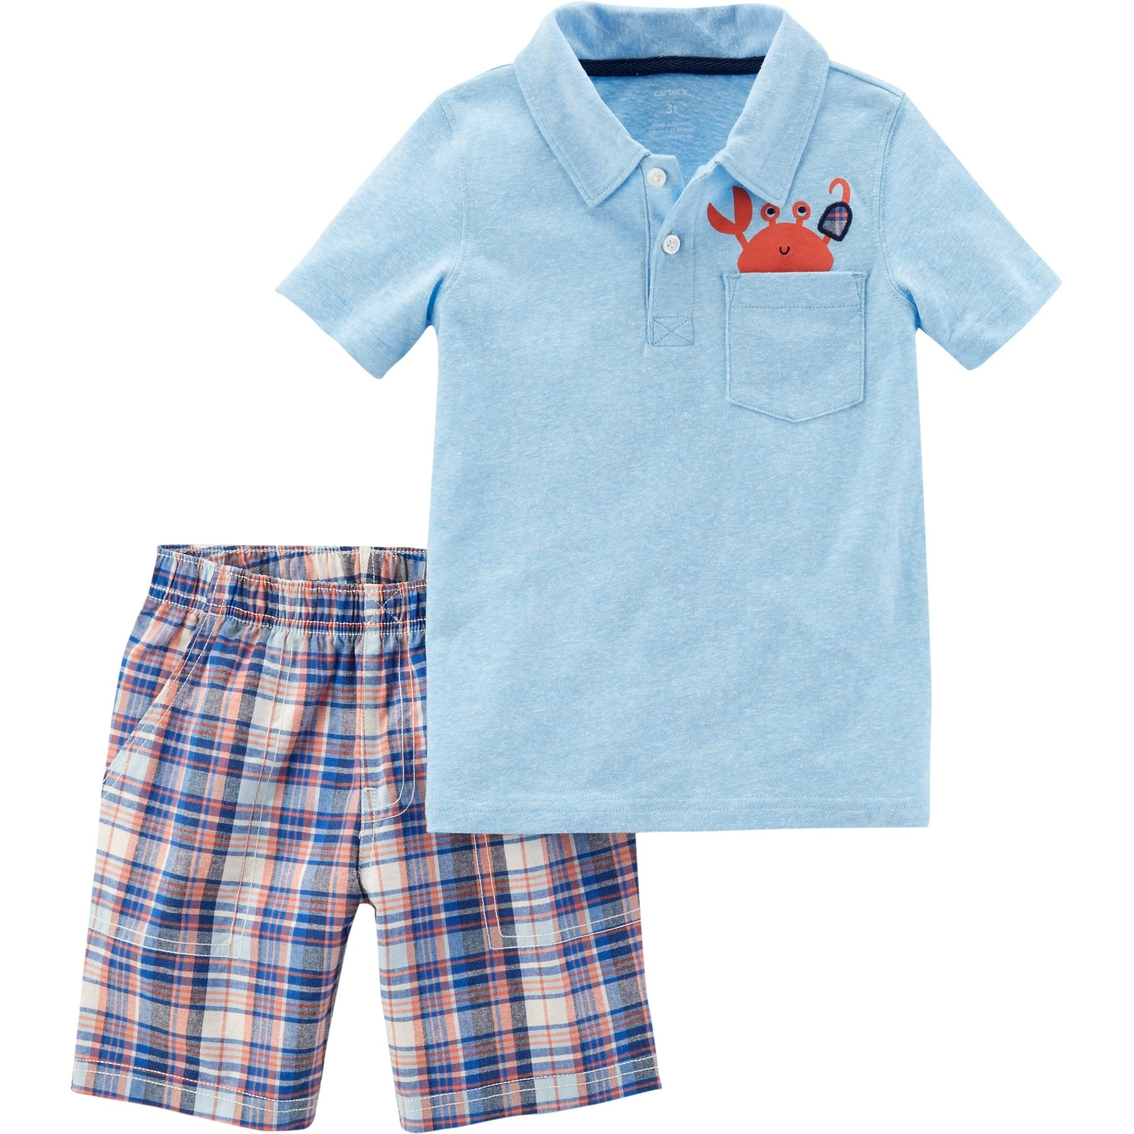 - Blue Carters Baby Boys 2 Piece Shorts Set 24 Months Baby